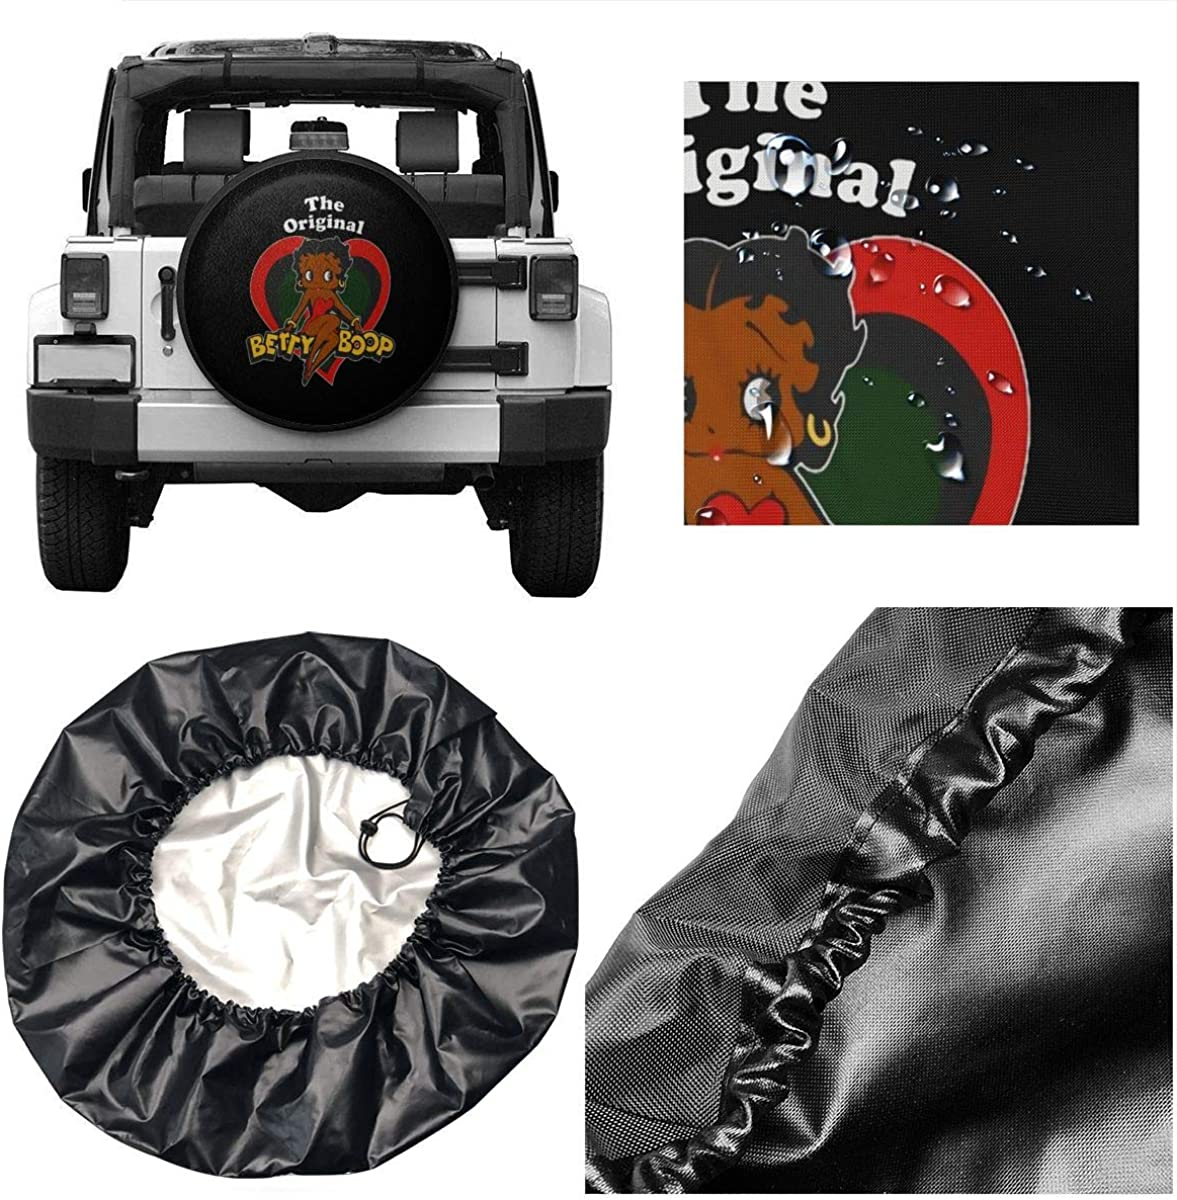 N//C Betty Boop Spare Wheel Tire Cover Waterproof for Trailer Rv SUV Truck Camper Travel Trailer Accessories